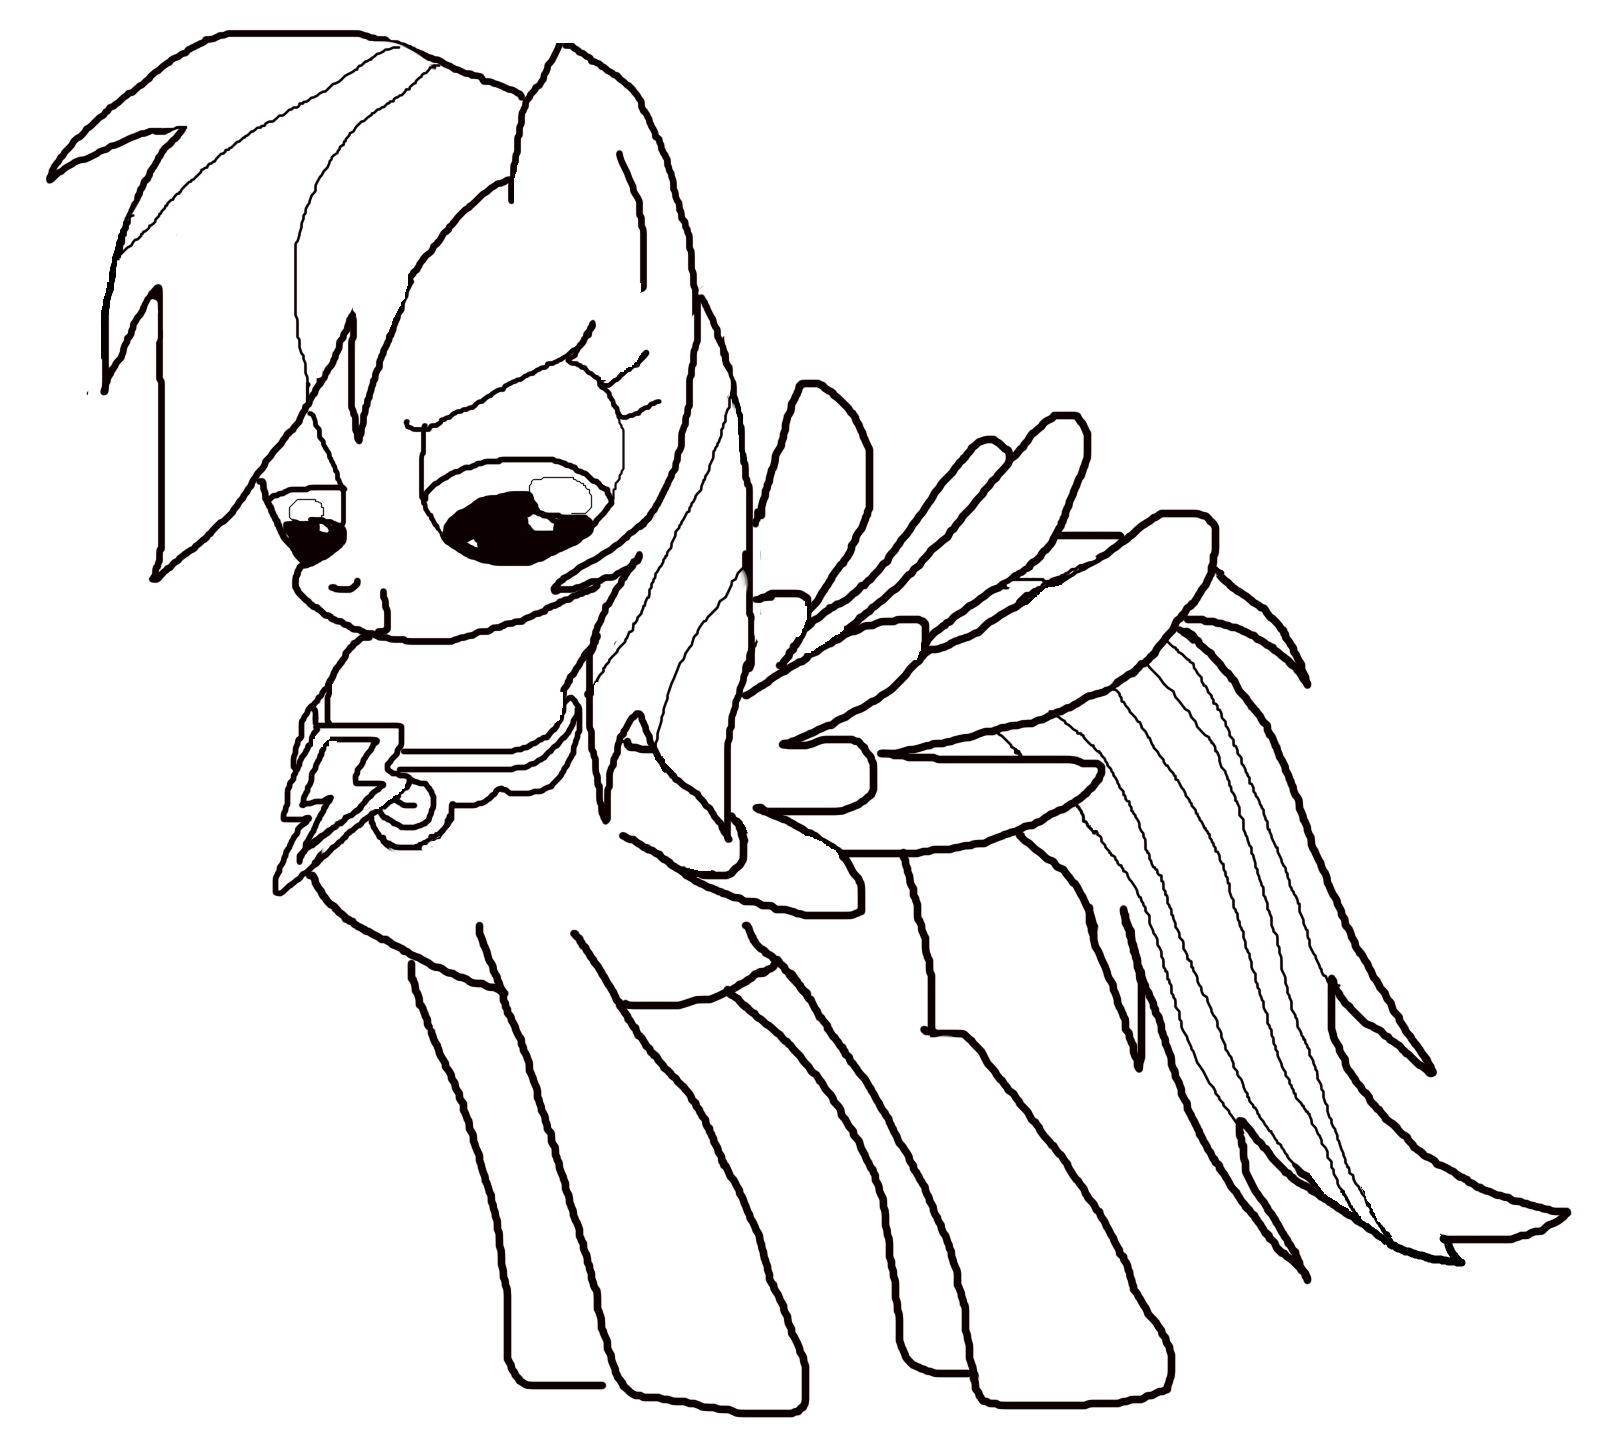 mlp printables free printable my little pony coloring pages for kids mlp printables